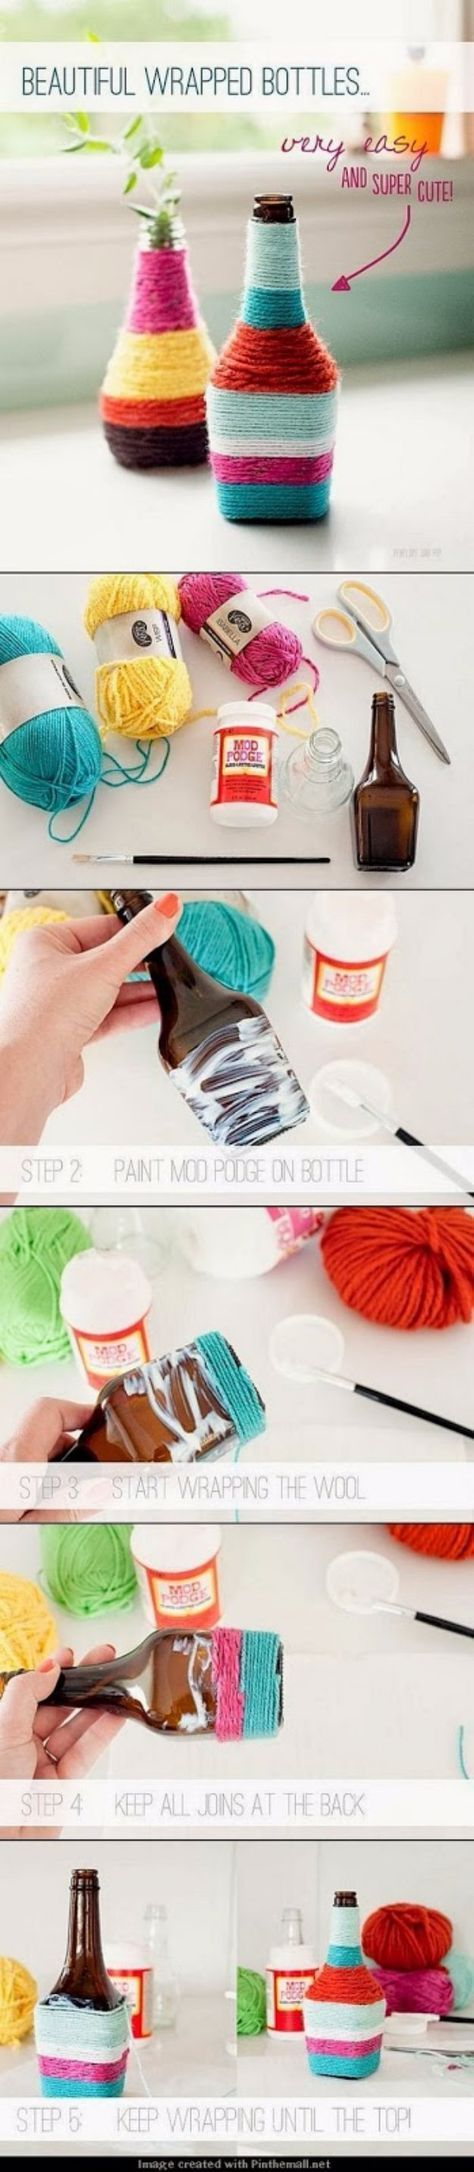 Crafts to Make and Sell - Beautiful Wrapped Bottles DIY - Cool and Cheap Craft Projects and DIY Ideas for Teens and Adults to Make…